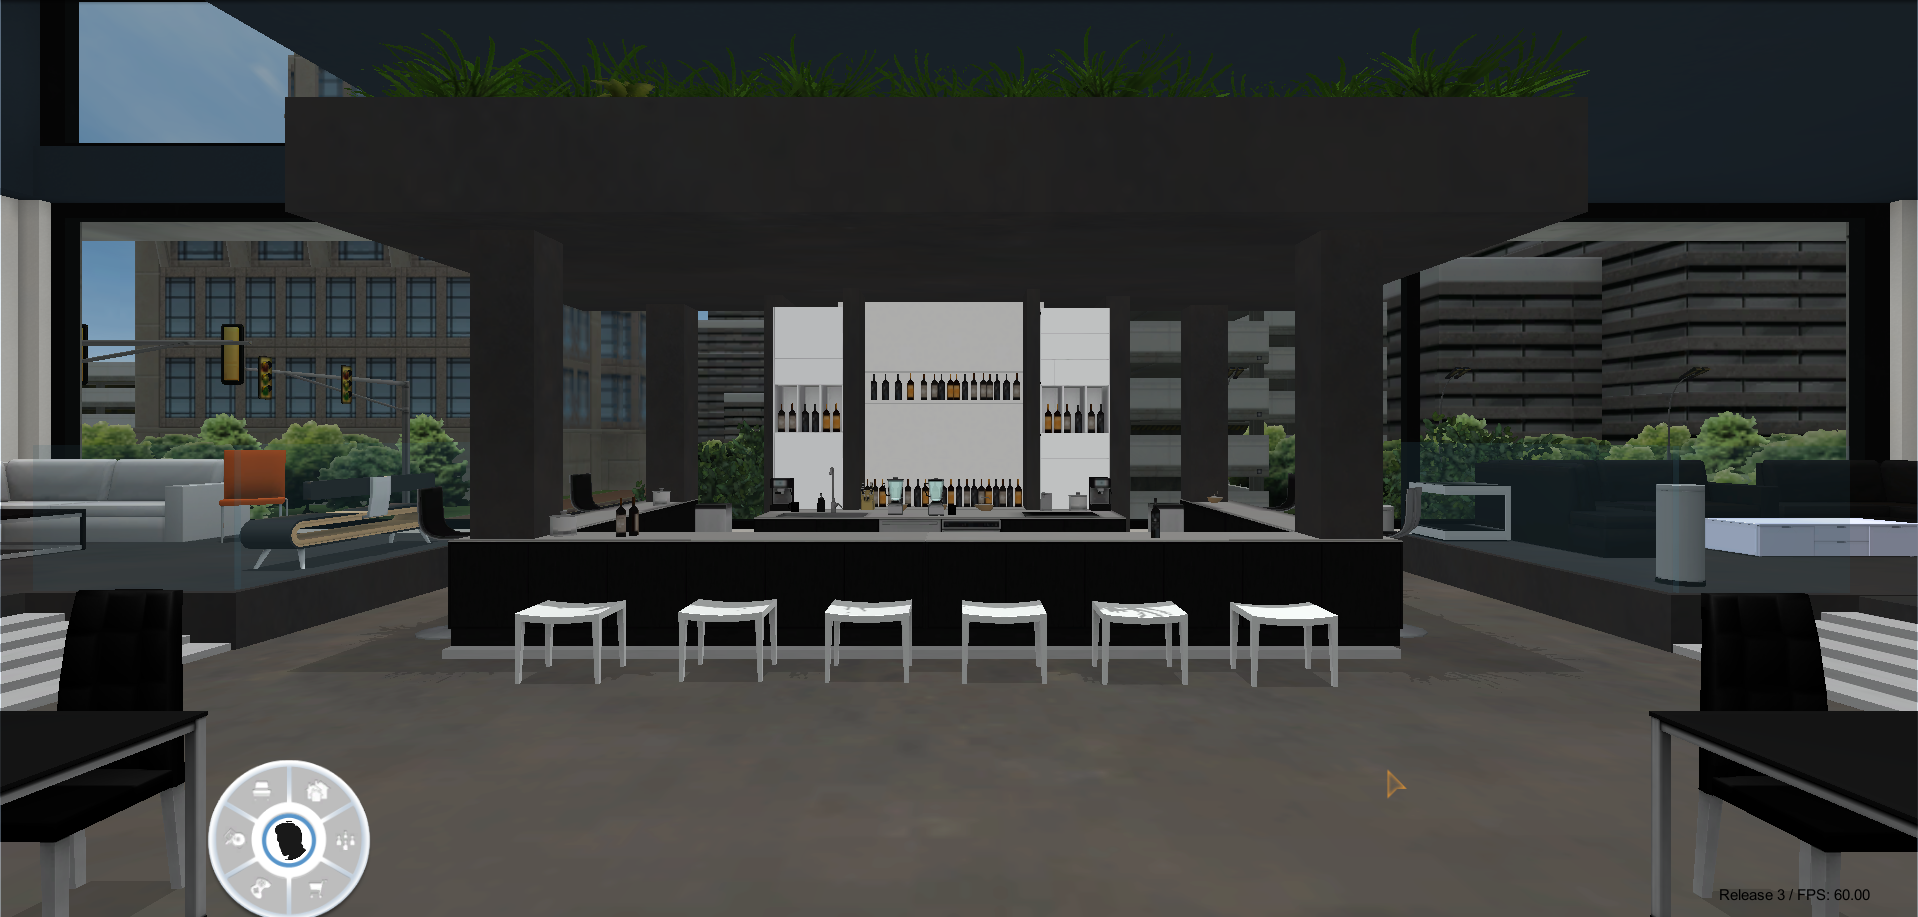 Sports Bar - Customized Urban Studio (Click to View)